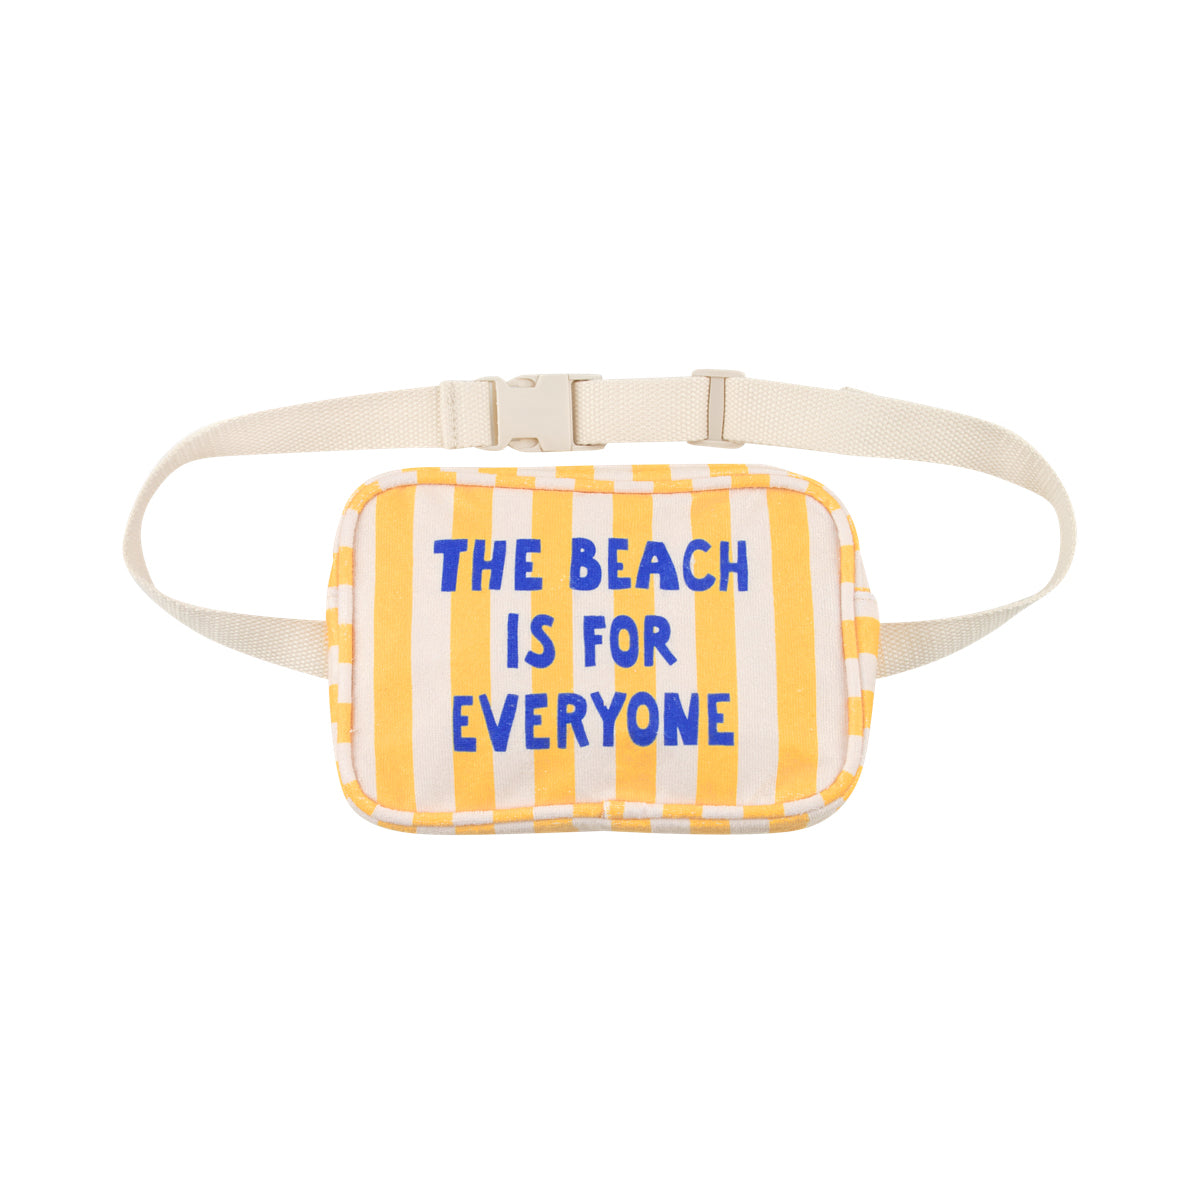 THE BEACH IS FOR EVERYONE FANNY BAG